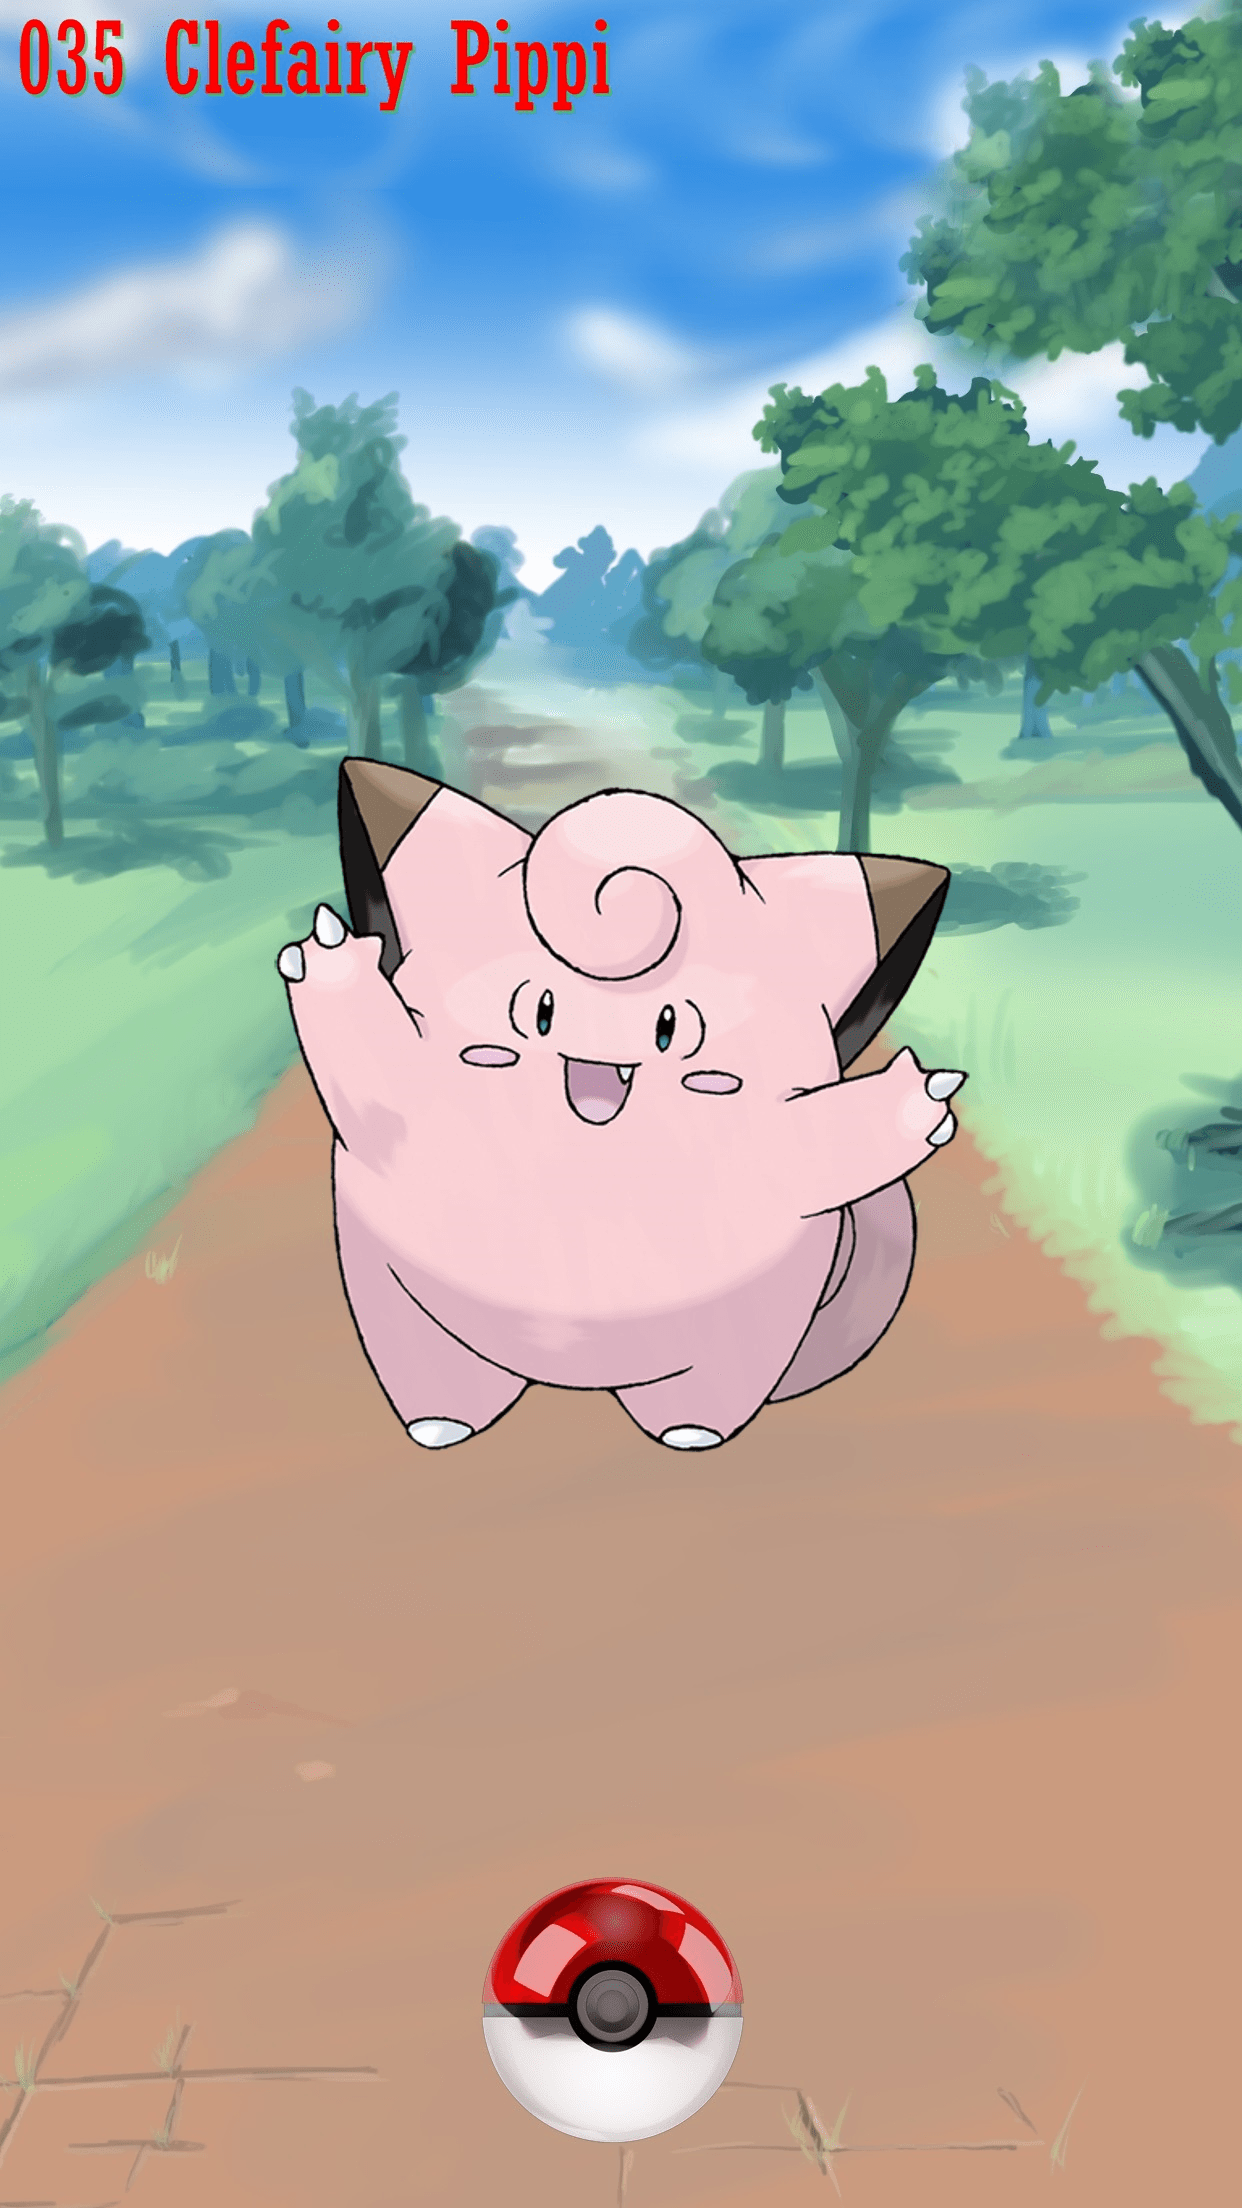 035 Street Pokeball Clefairy Pippi | Wallpaper